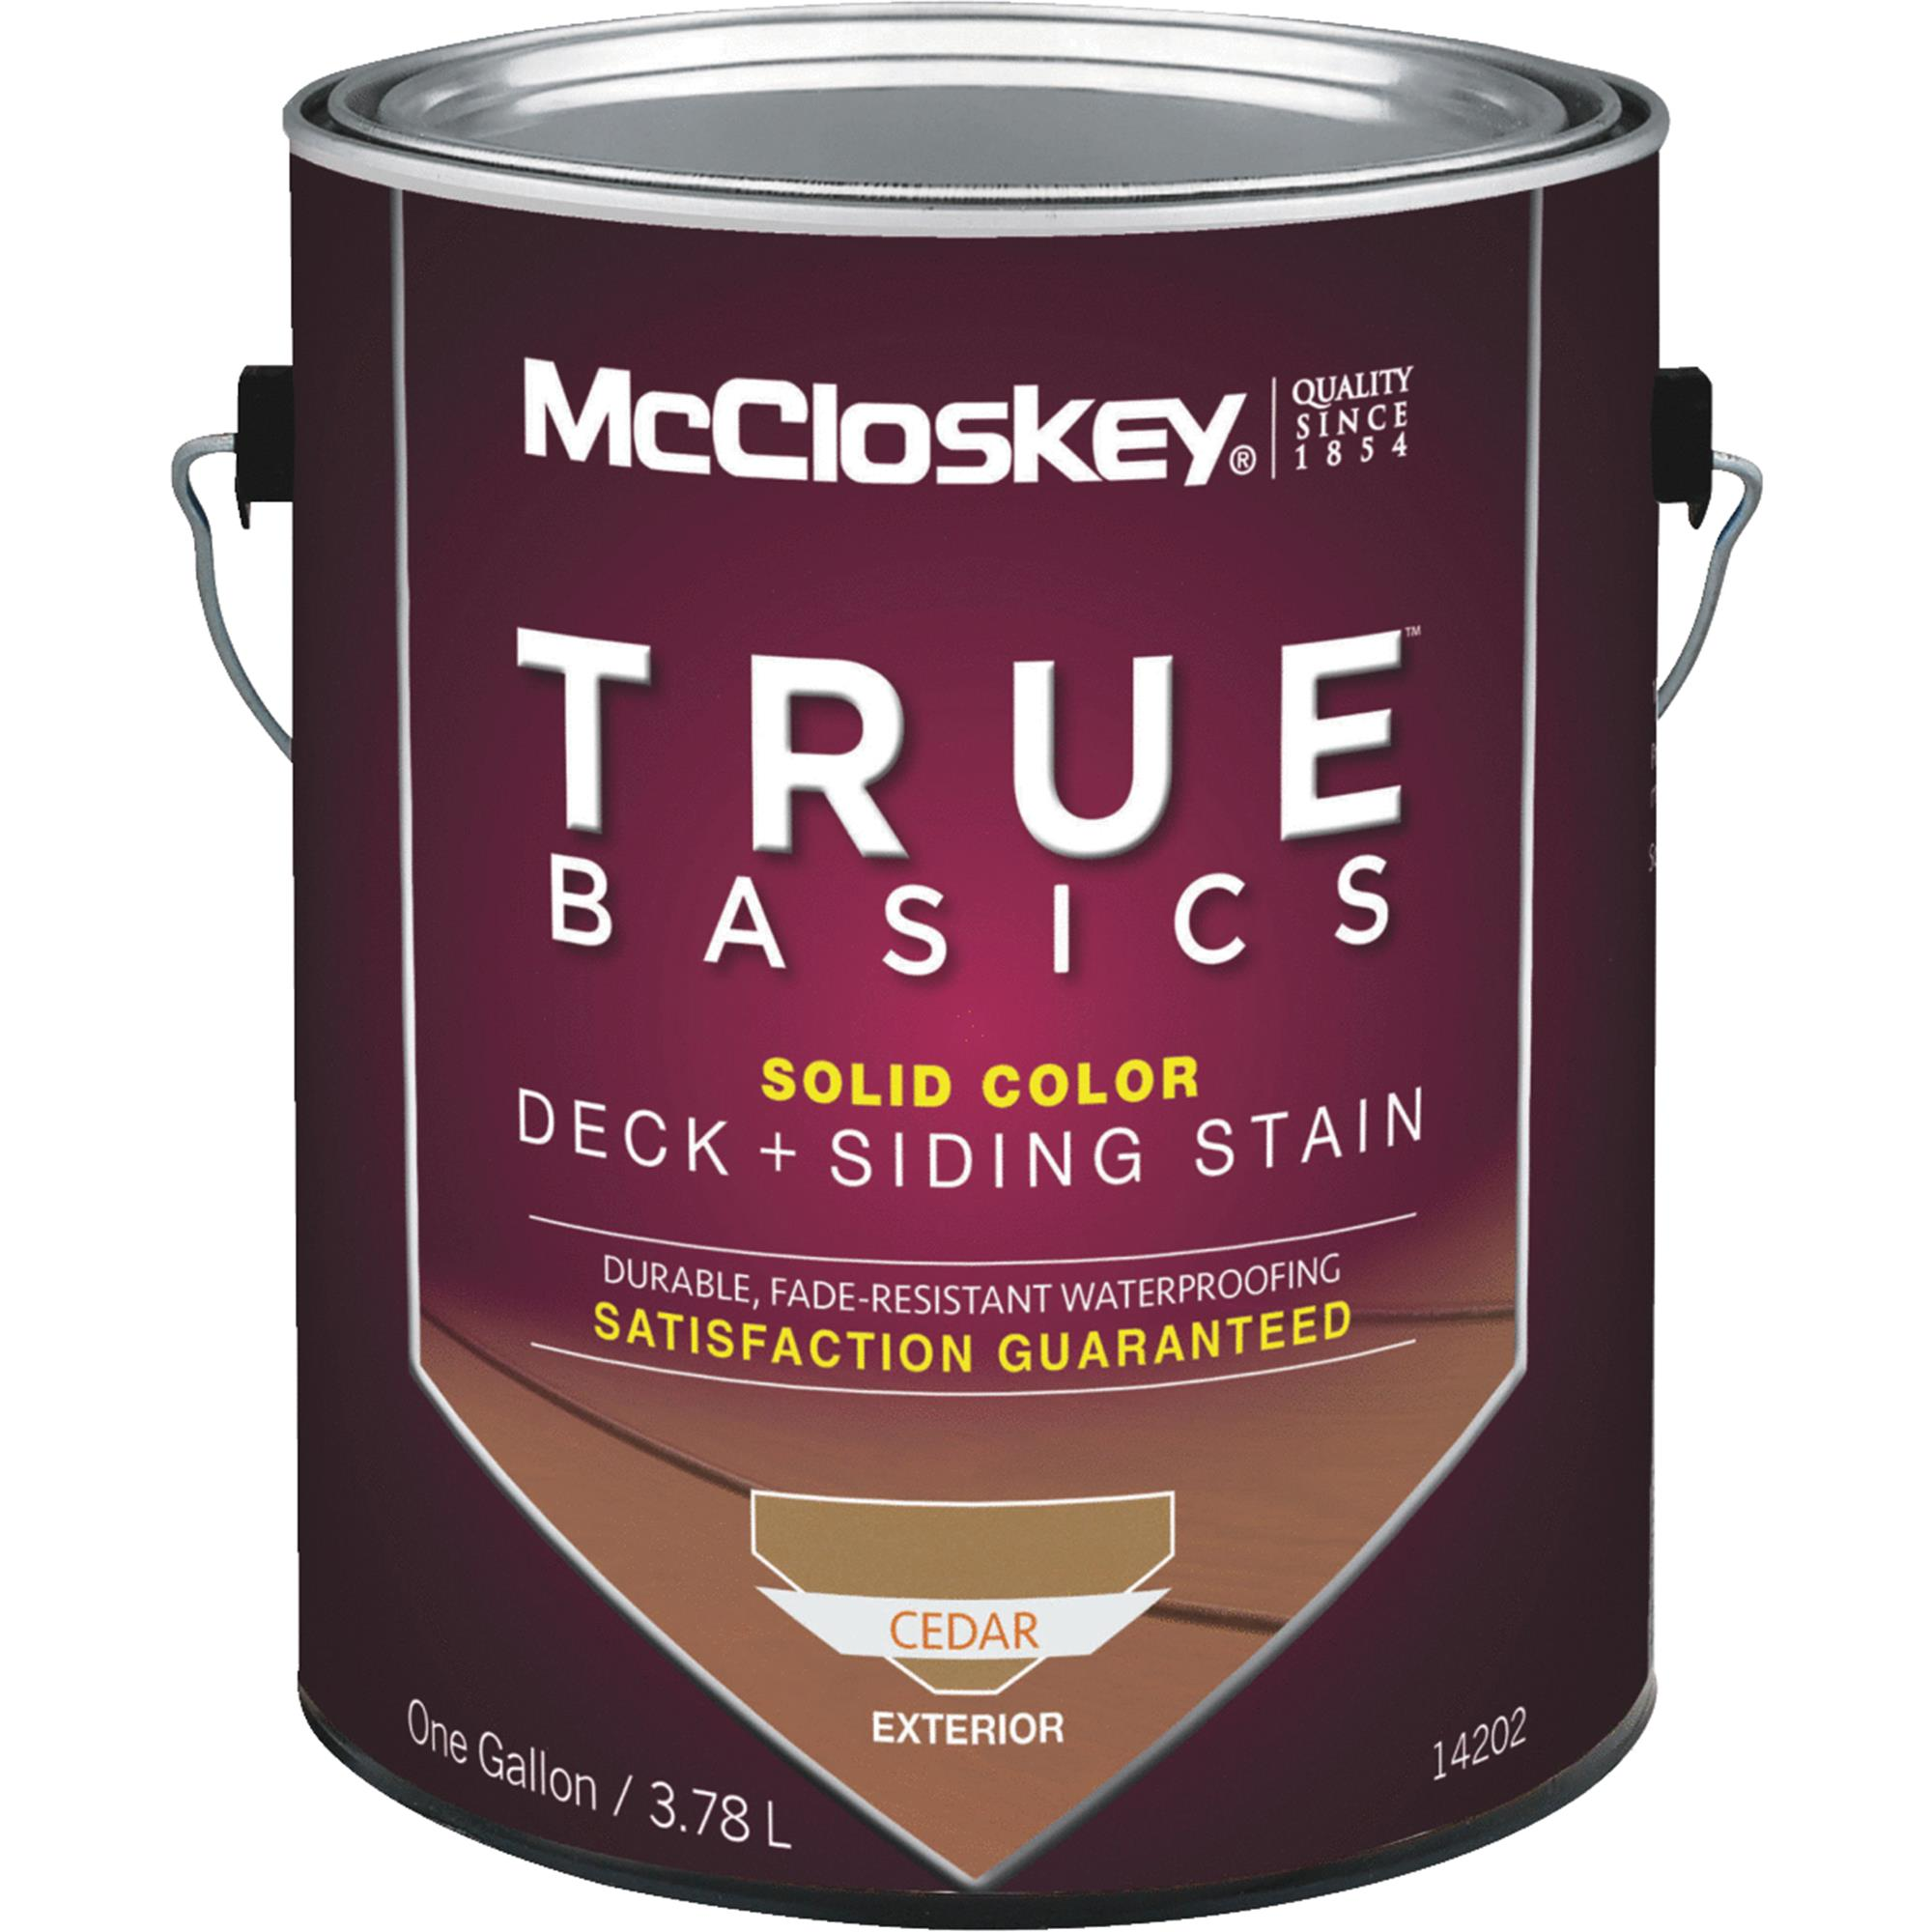 McCloskey TRUE BASICS Solid Color Deck & Siding Exterior Stain